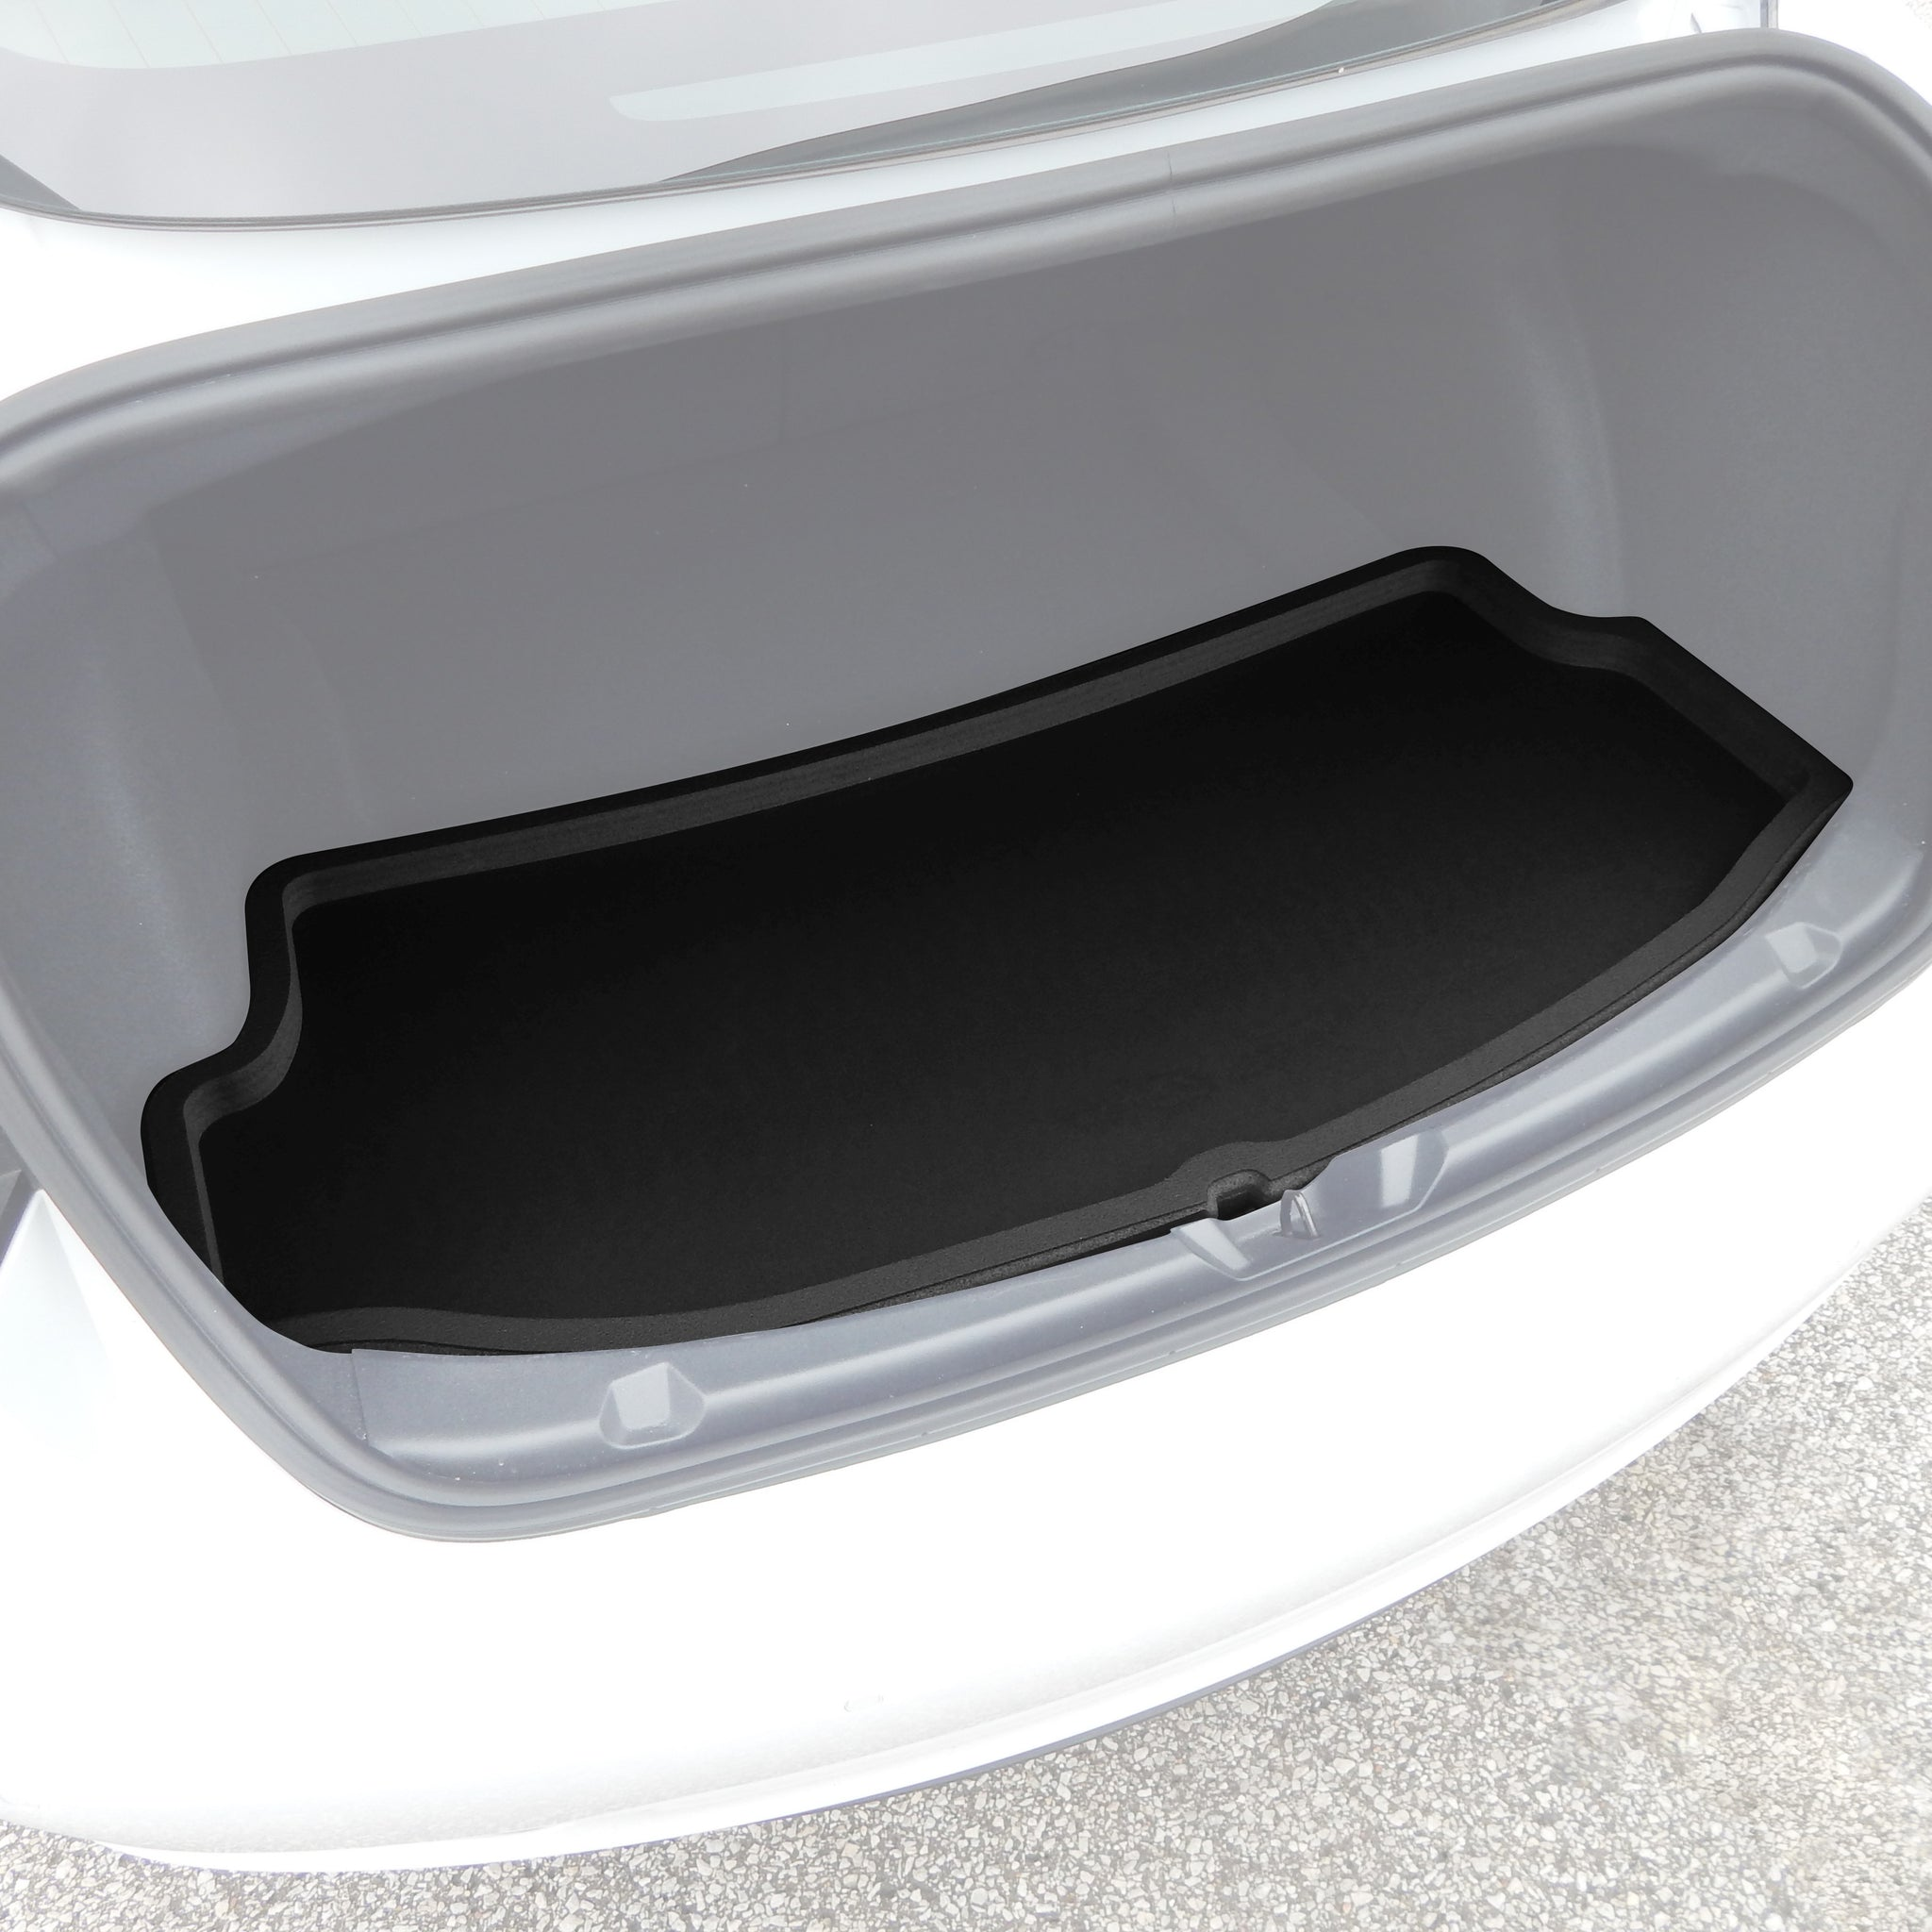 Red Hound Auto Rear Trunk Mat Liner Cargo Tray Custom Direct Fit Floor Black Foam Compatible with Tesla Model 3 2017-2019 Anti-Rattle Waterproof Protector Washable with Tall Raised Lip